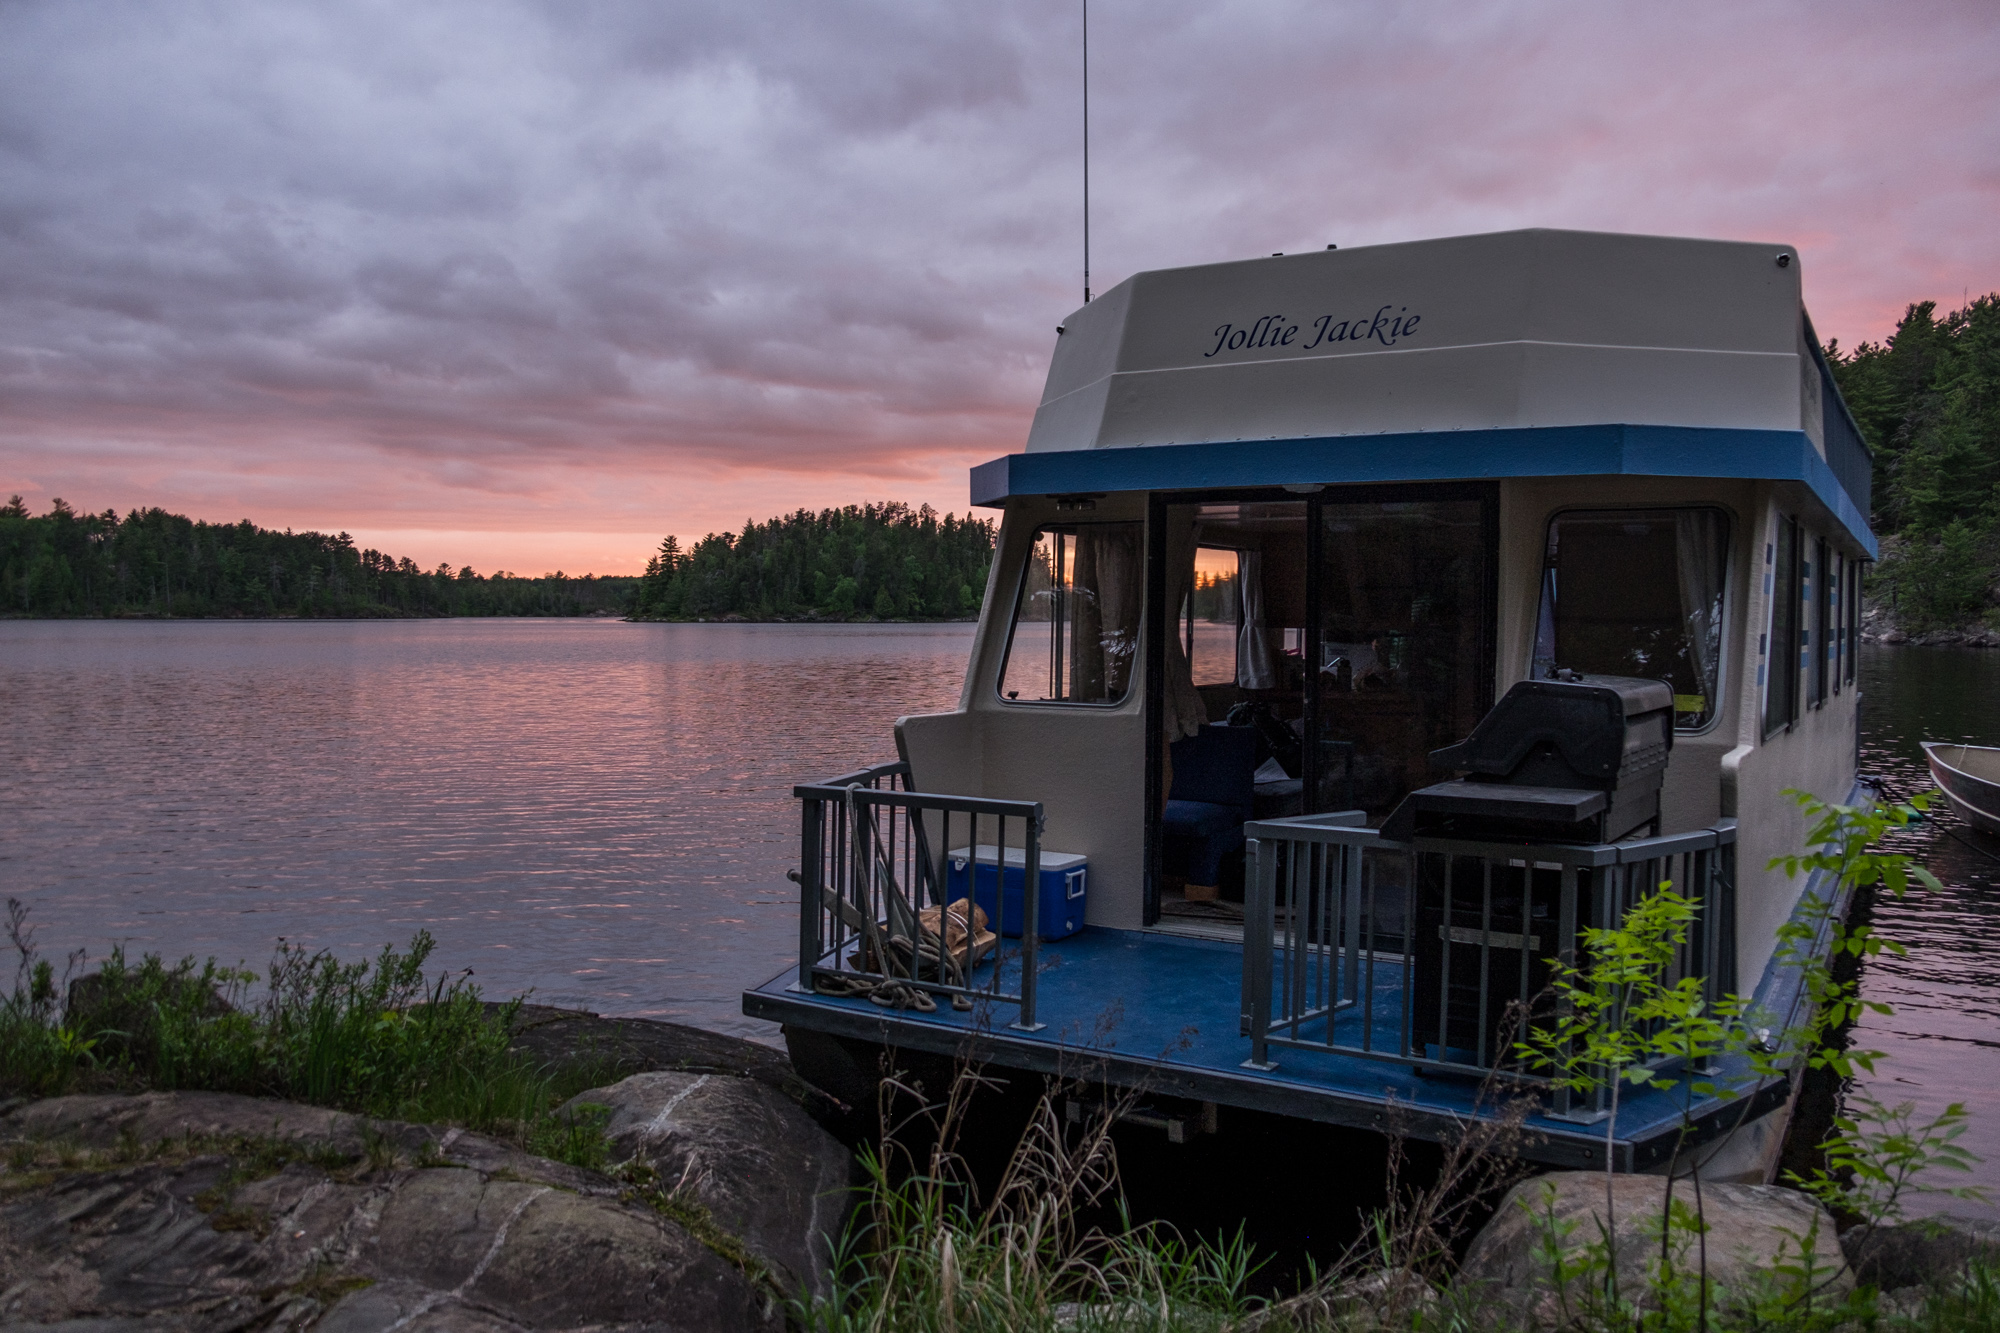 """Our houseboat, the """"Jollie Jackie"""", docked on the snake island campsite."""